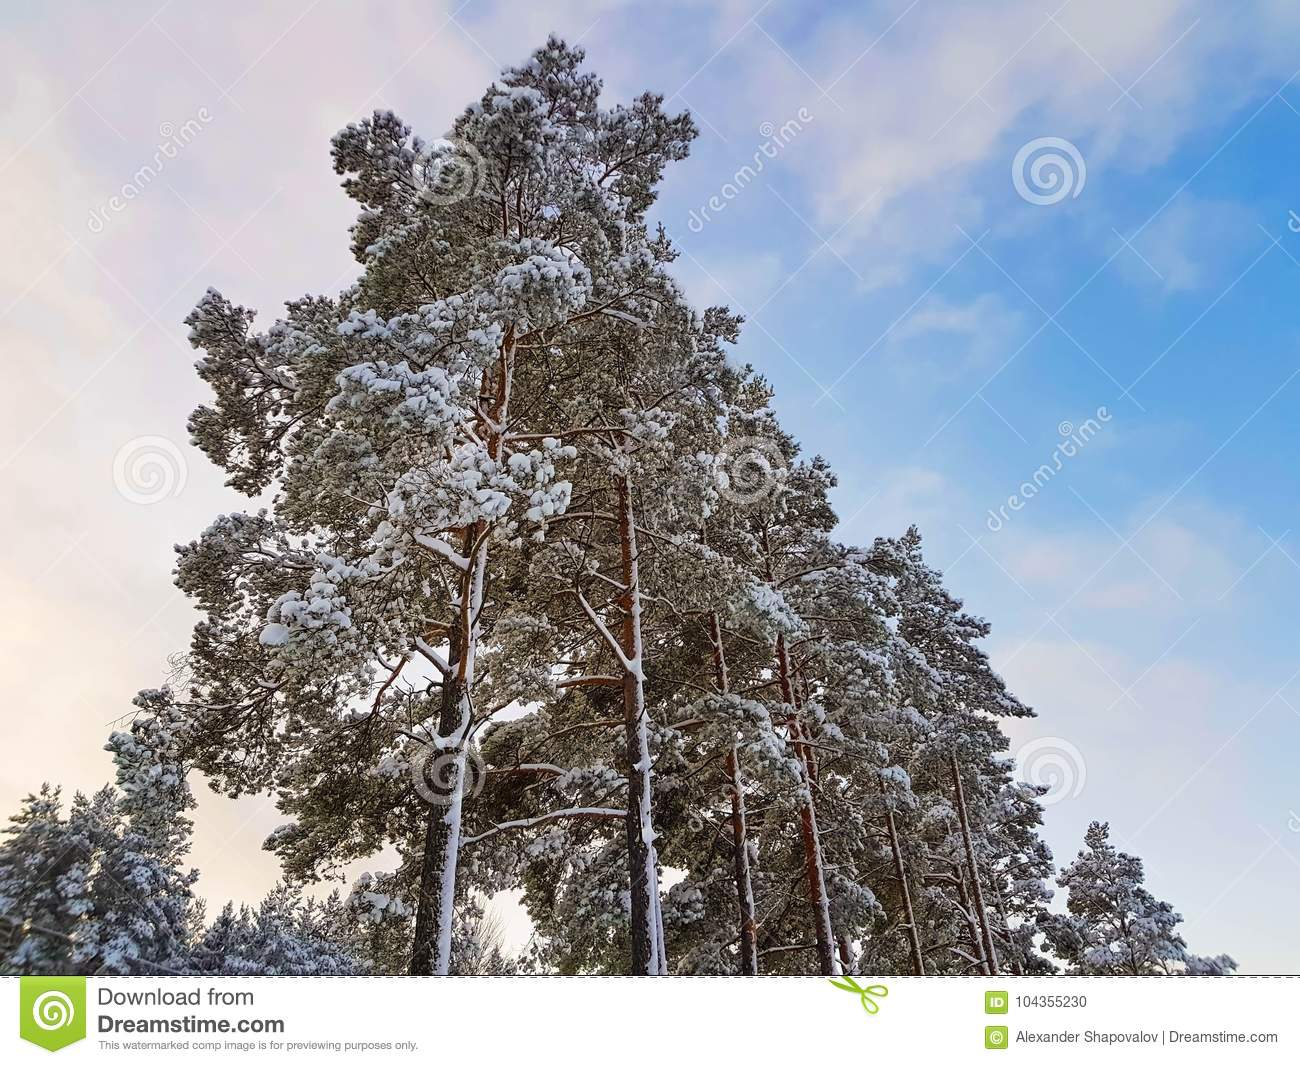 Amazing view of pine tree crown in snow on blue sky background.